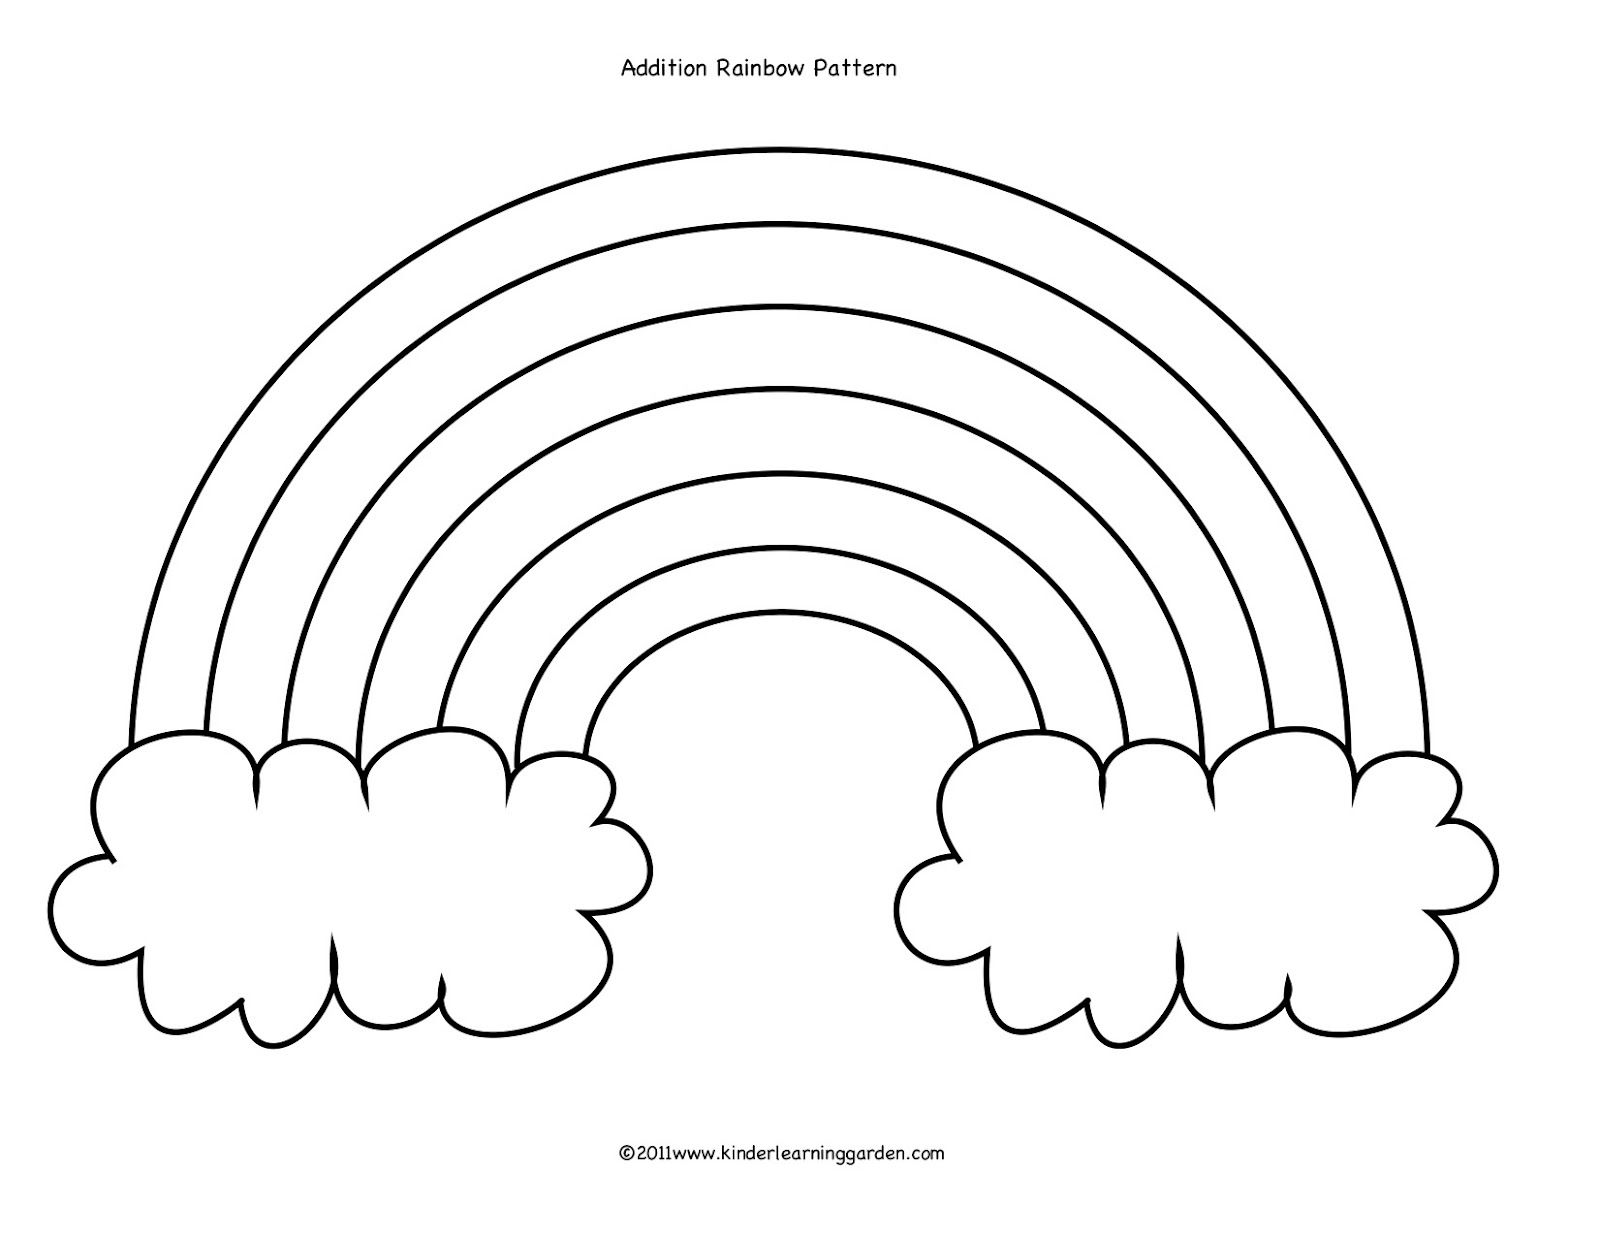 Rainbow Cloud Addition With Images Rainbow Drawing Preschool